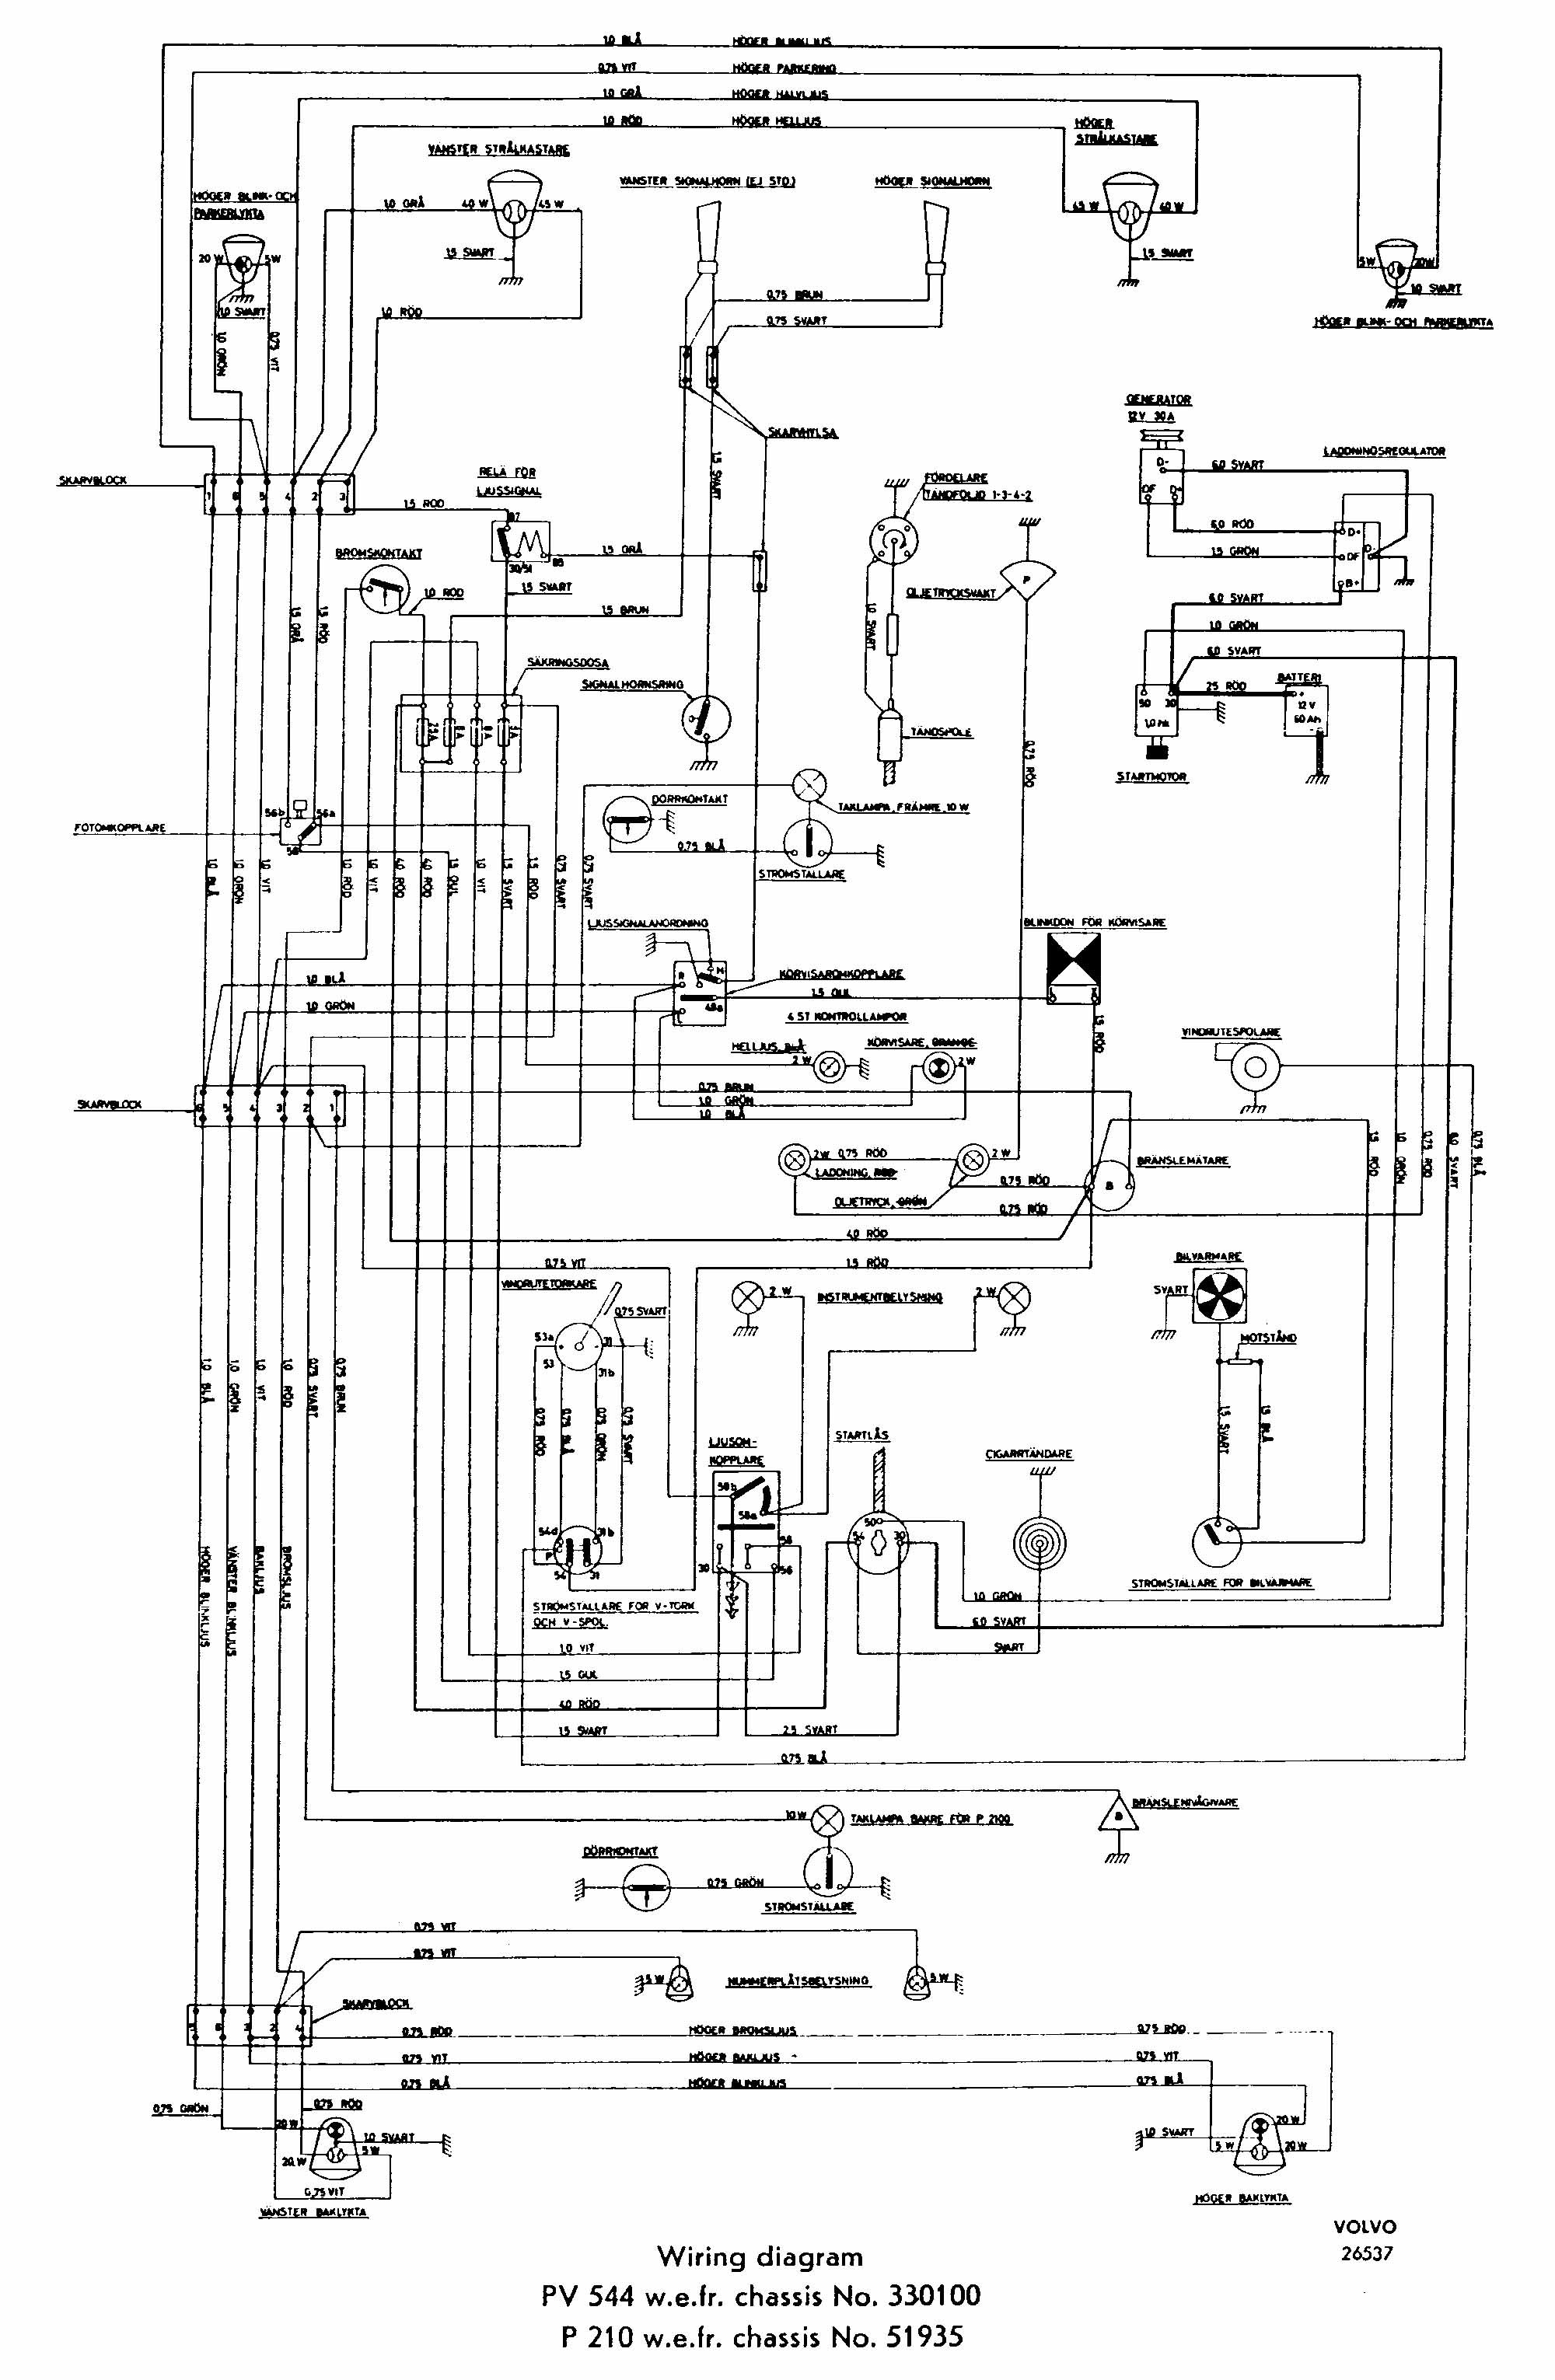 wiper motor diagram td5 rear wiper wiring help please